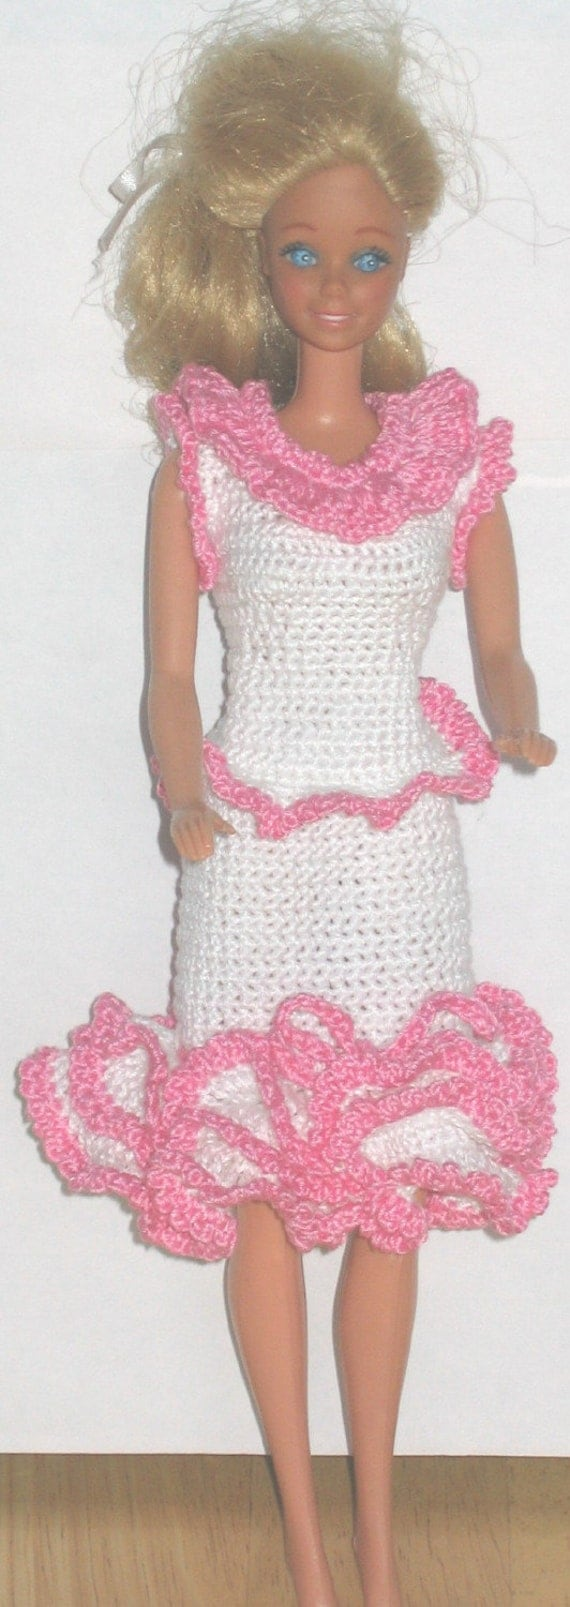 Crocheted Barbie Dress - Summer Strolling Outfit